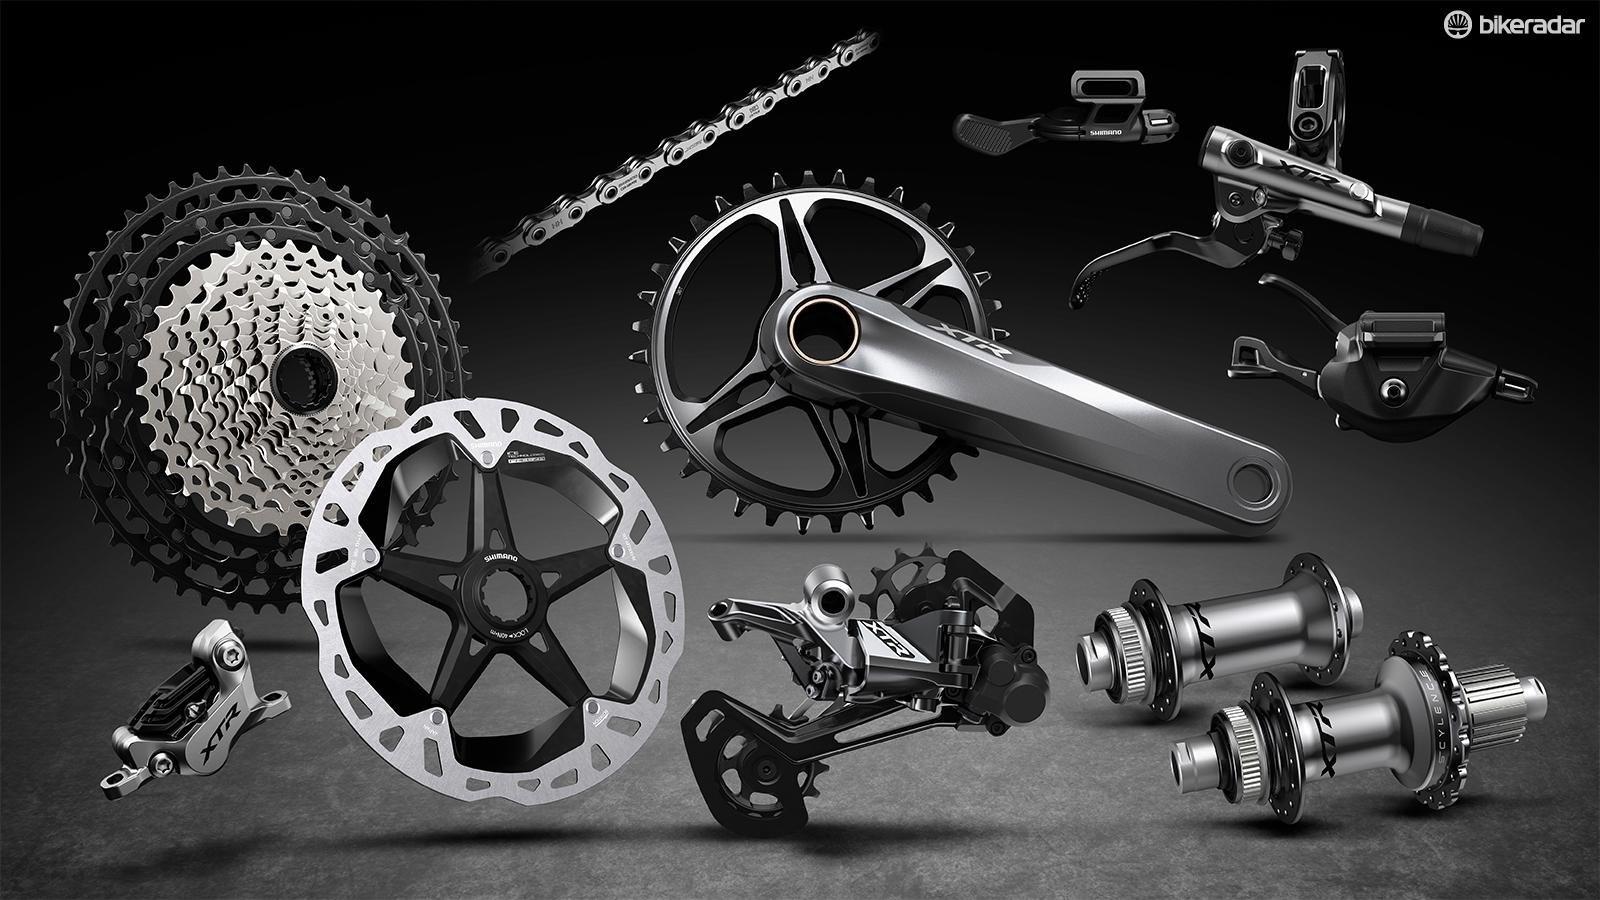 The latest Shimano XTR group has a wealth of drivetrain options to choose from